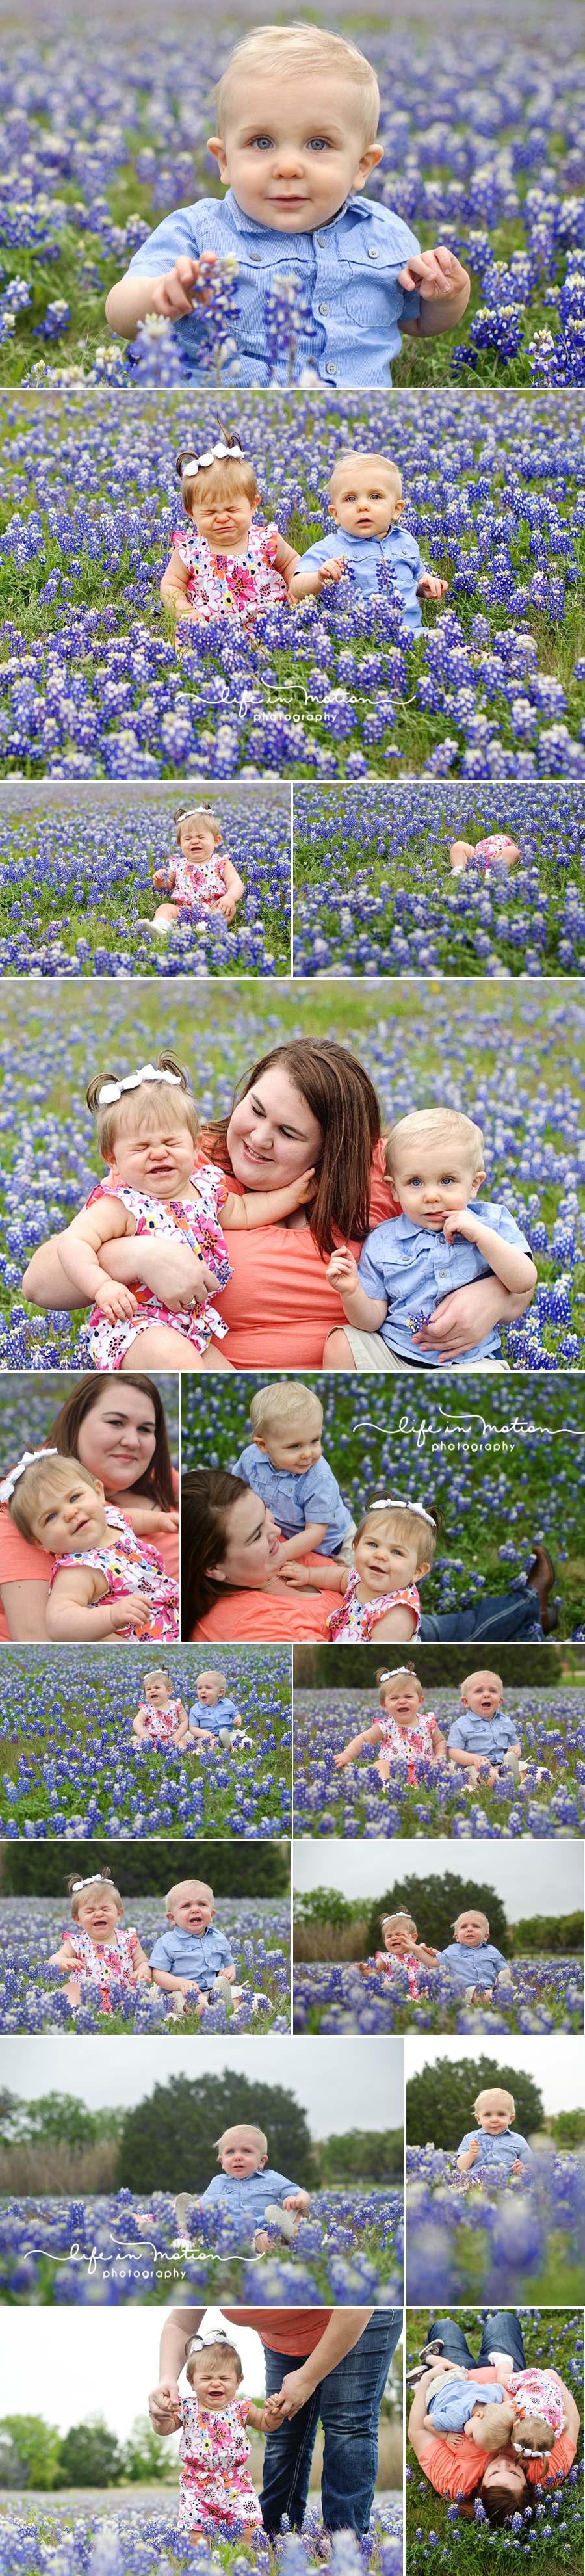 bluebonnet_photos_mini_session_austin_texas